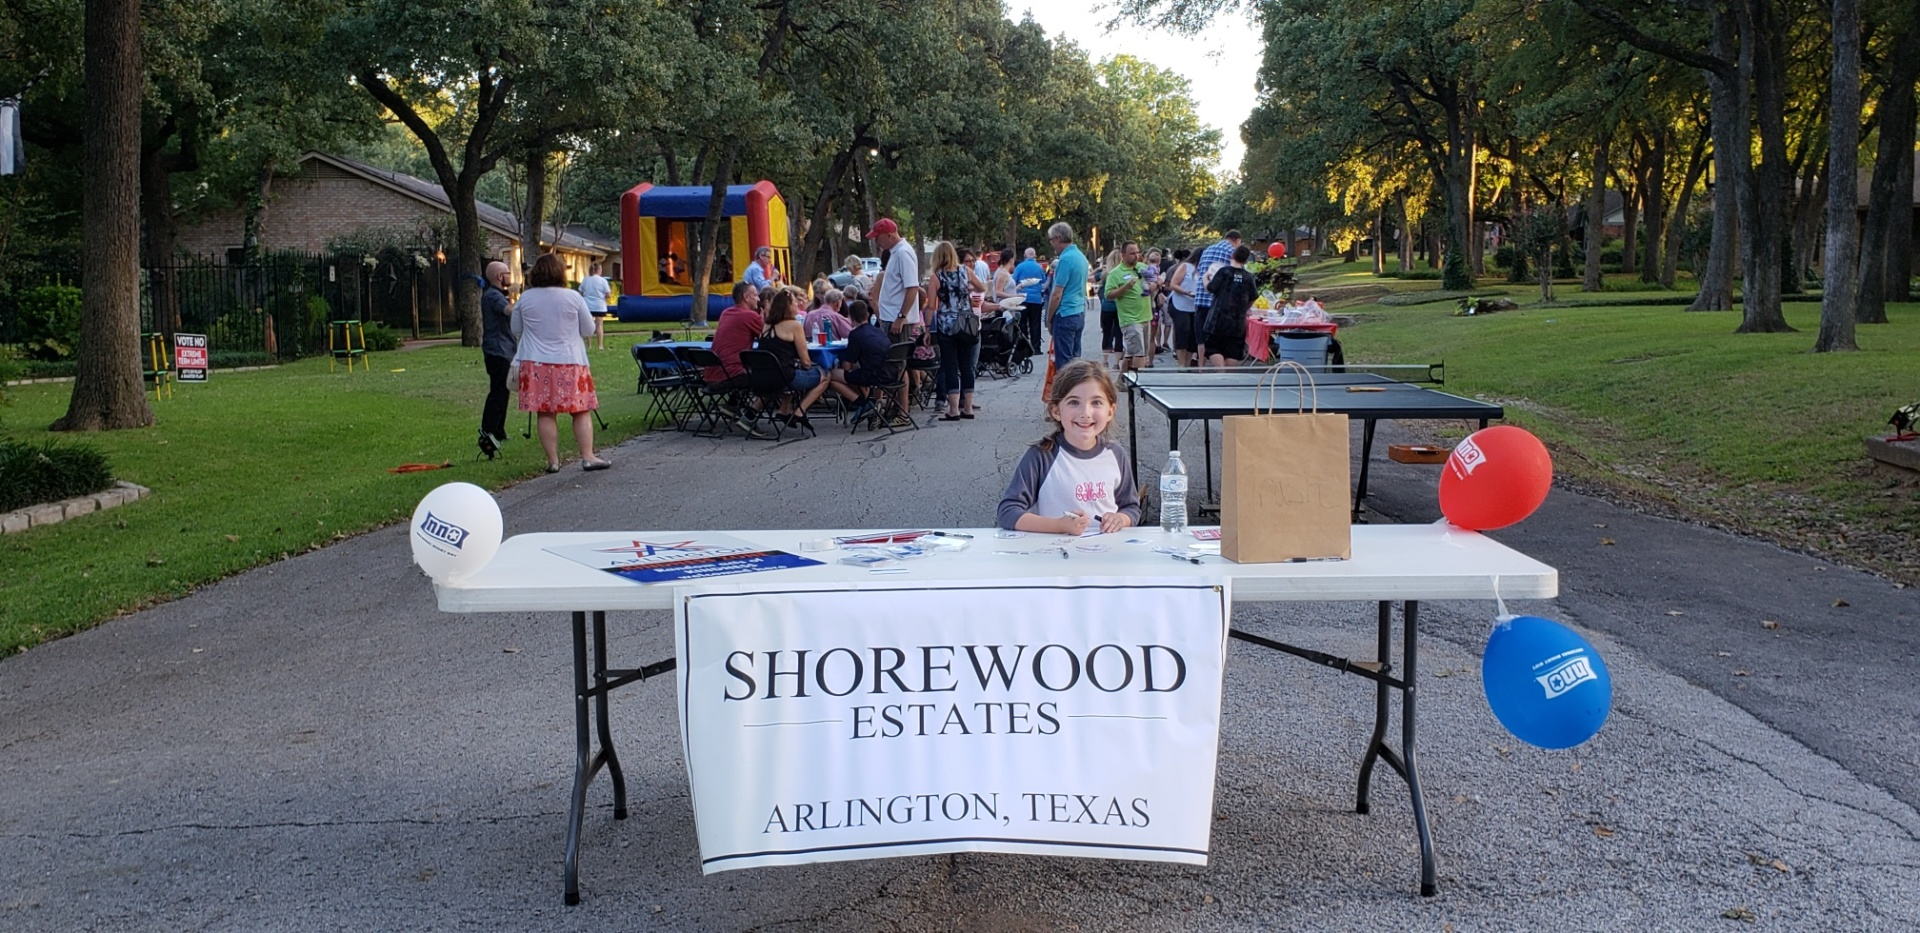 National Night Out Arlington, Tx - Shorewood Estates - Fall 2018